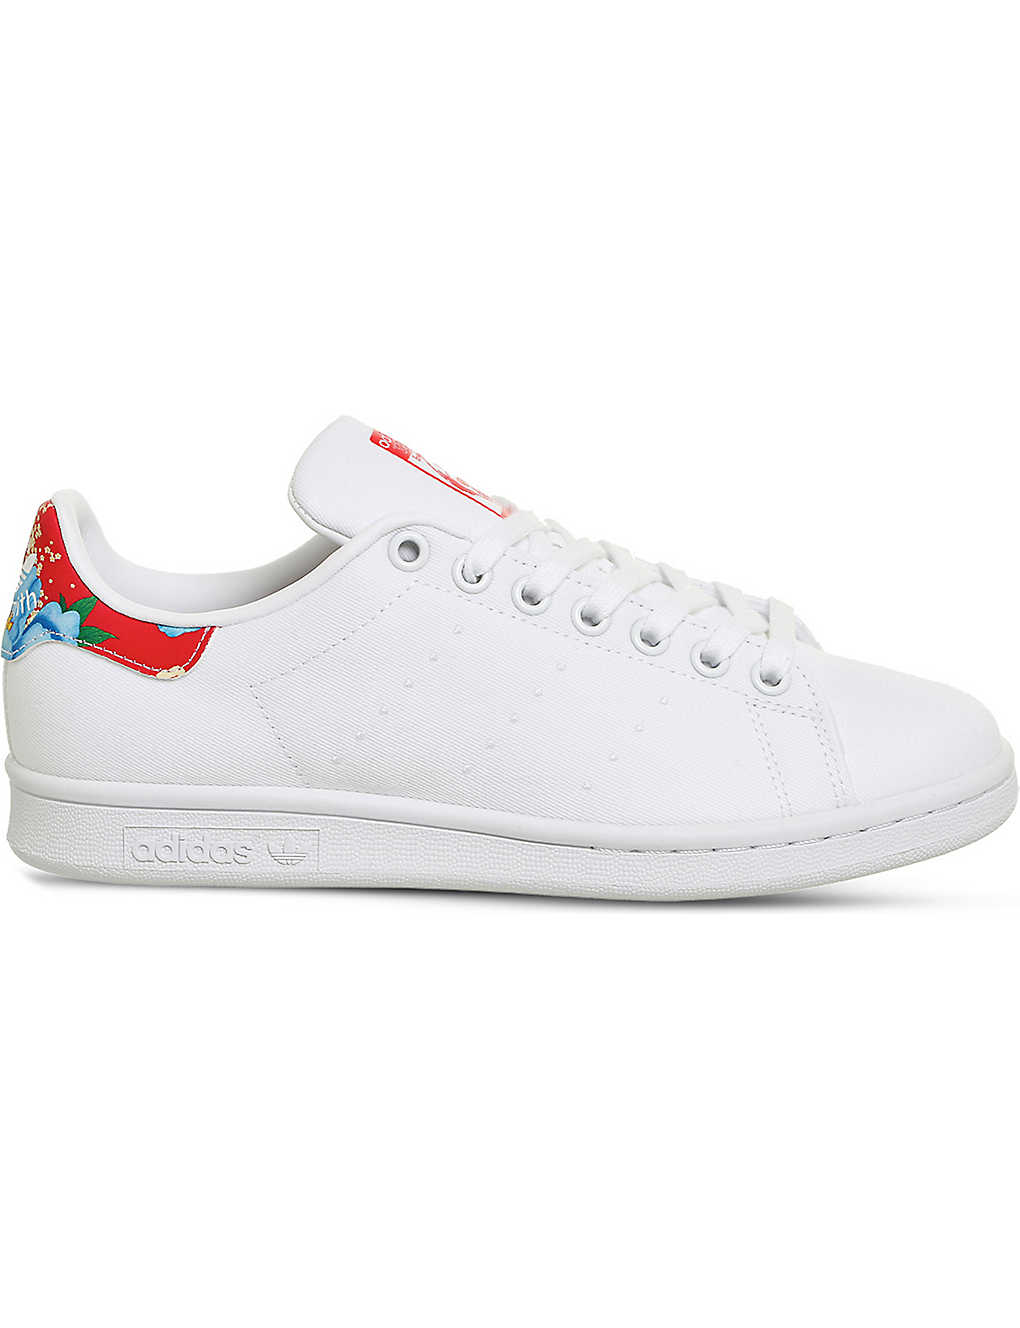 ADIDAS - Stan Smith floral canvas trainers  97c6b2a63